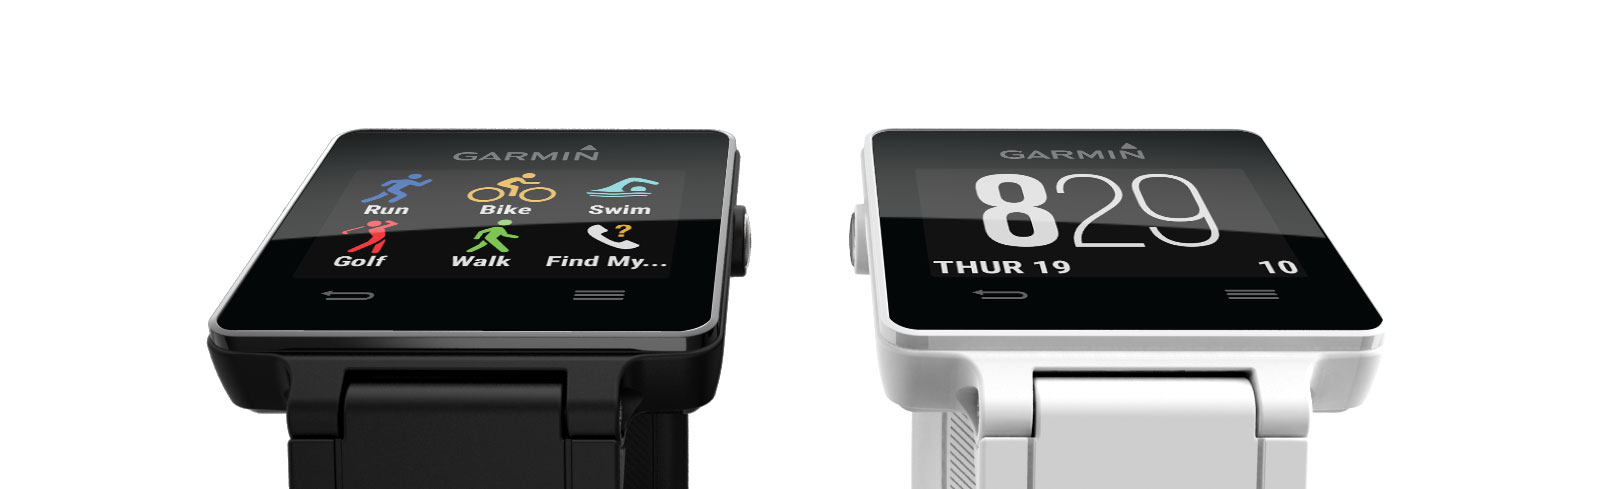 garmin-vivoactive-pair-header